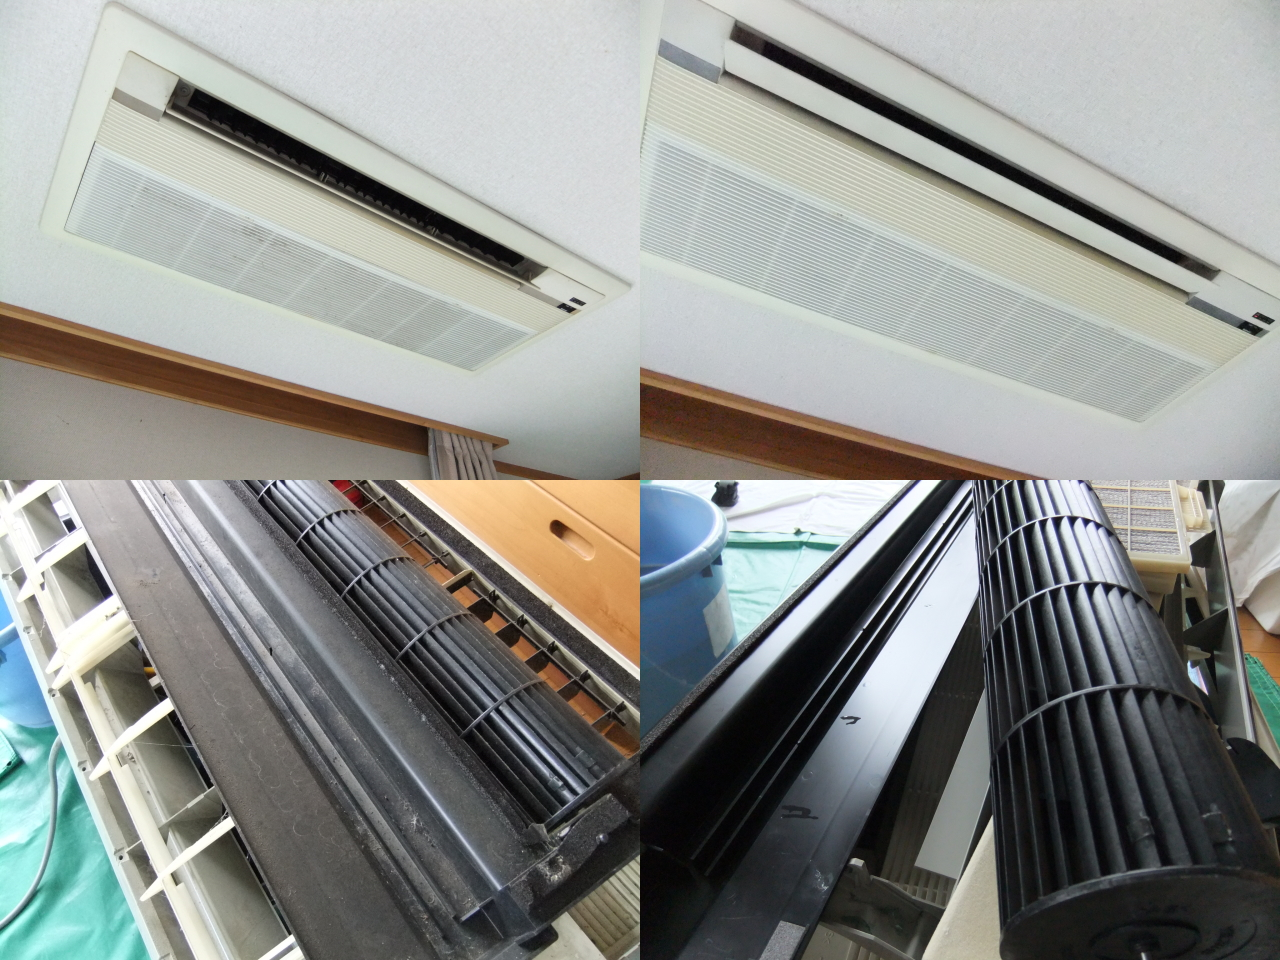 http://ajras.net/images/110620-aircon2.jpg